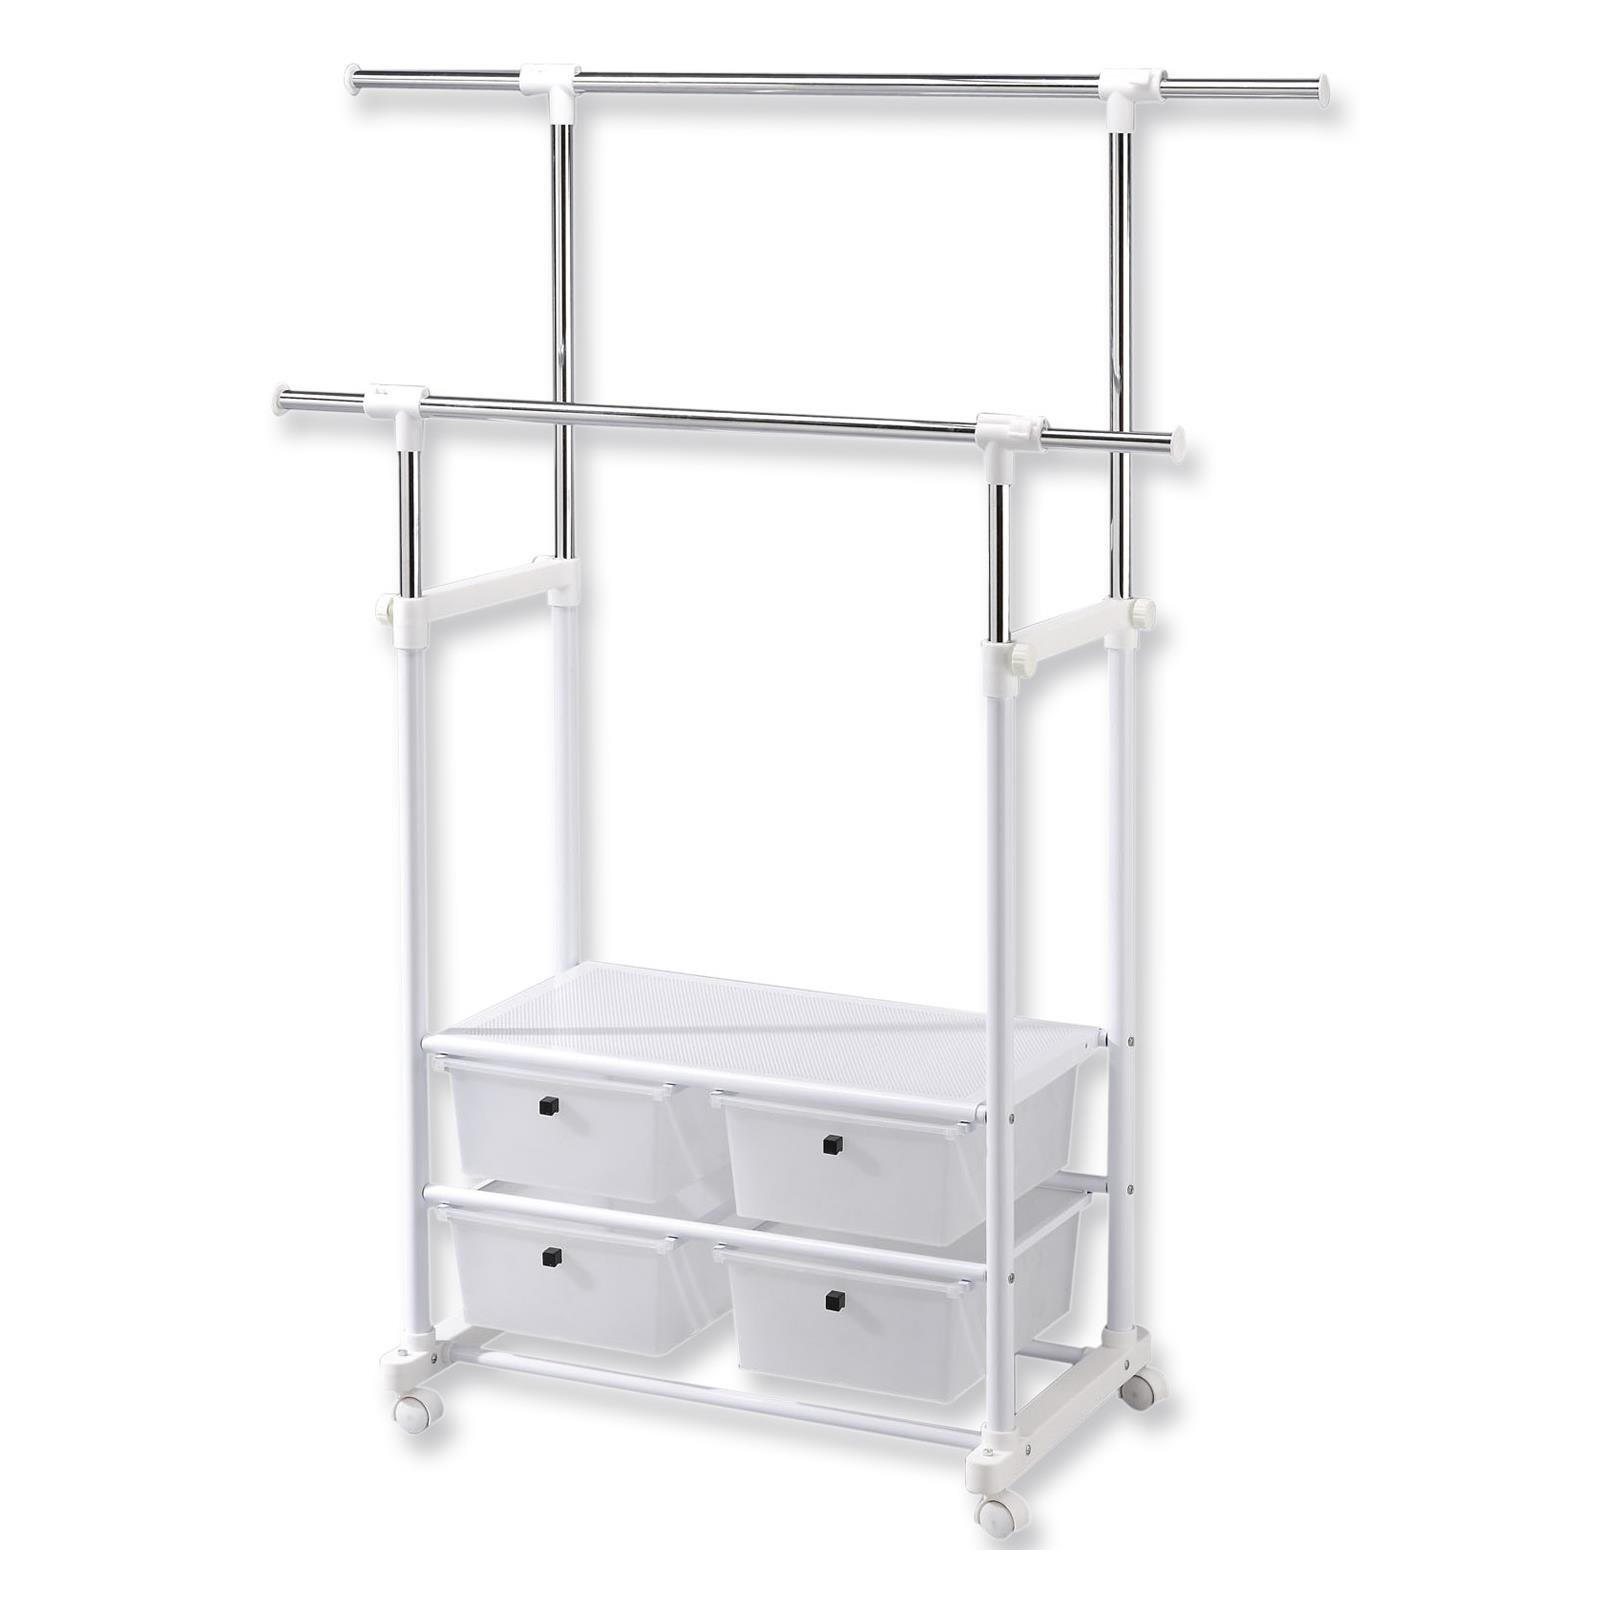 Cream Clothes Rail | Wayfair.co (View 10 of 20)